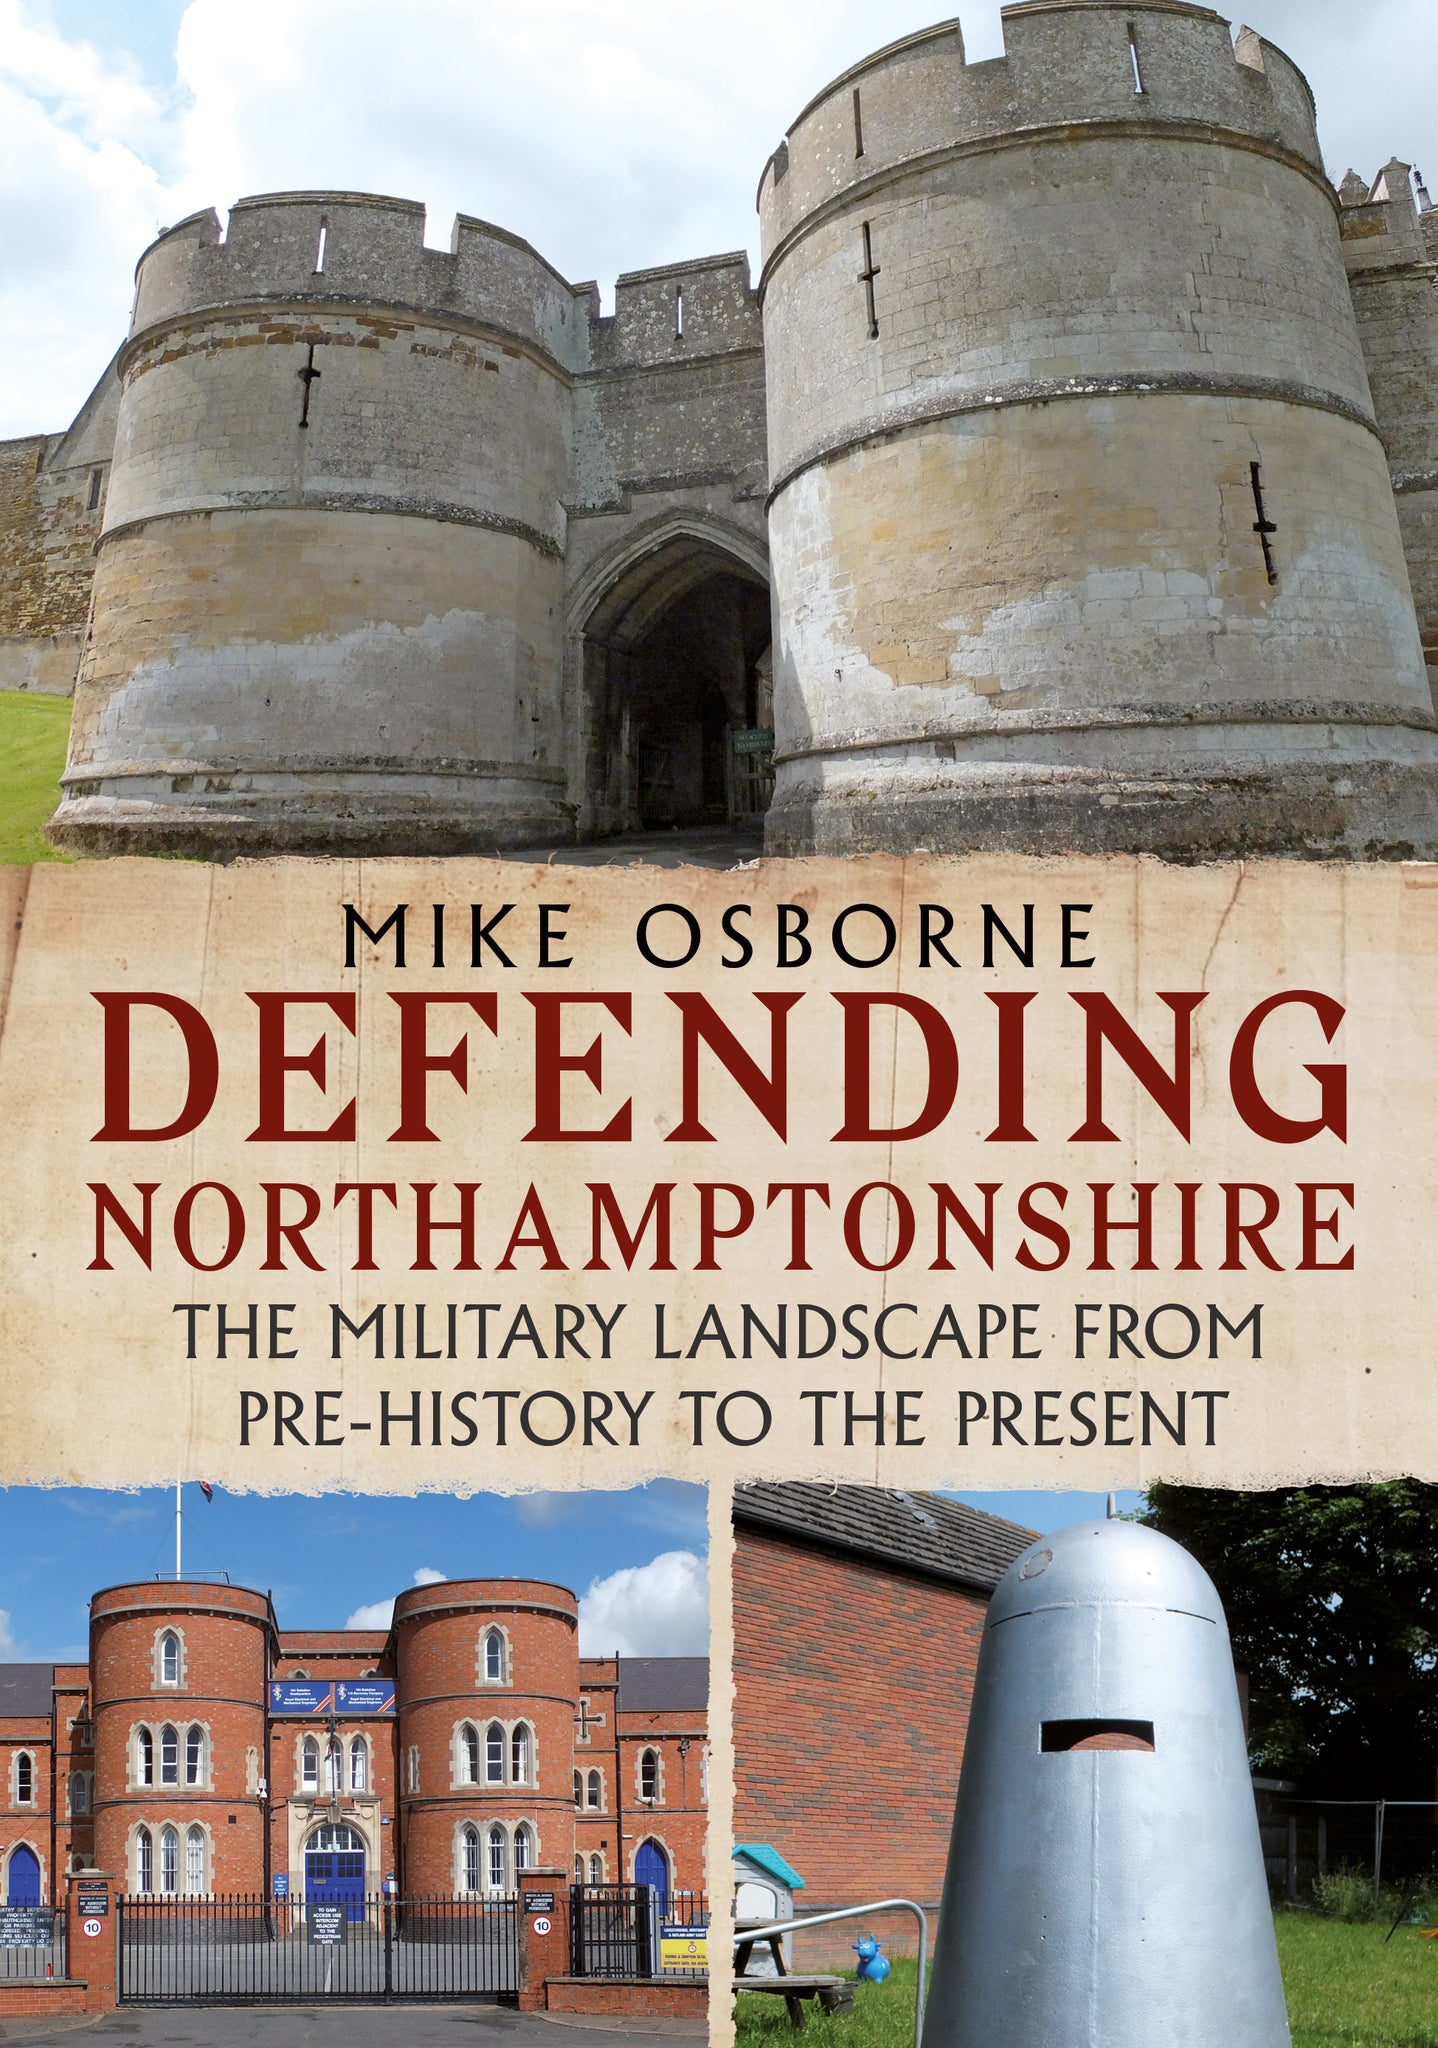 Defending Northamptonshire: The Military Landscape from Pre-history to the Present